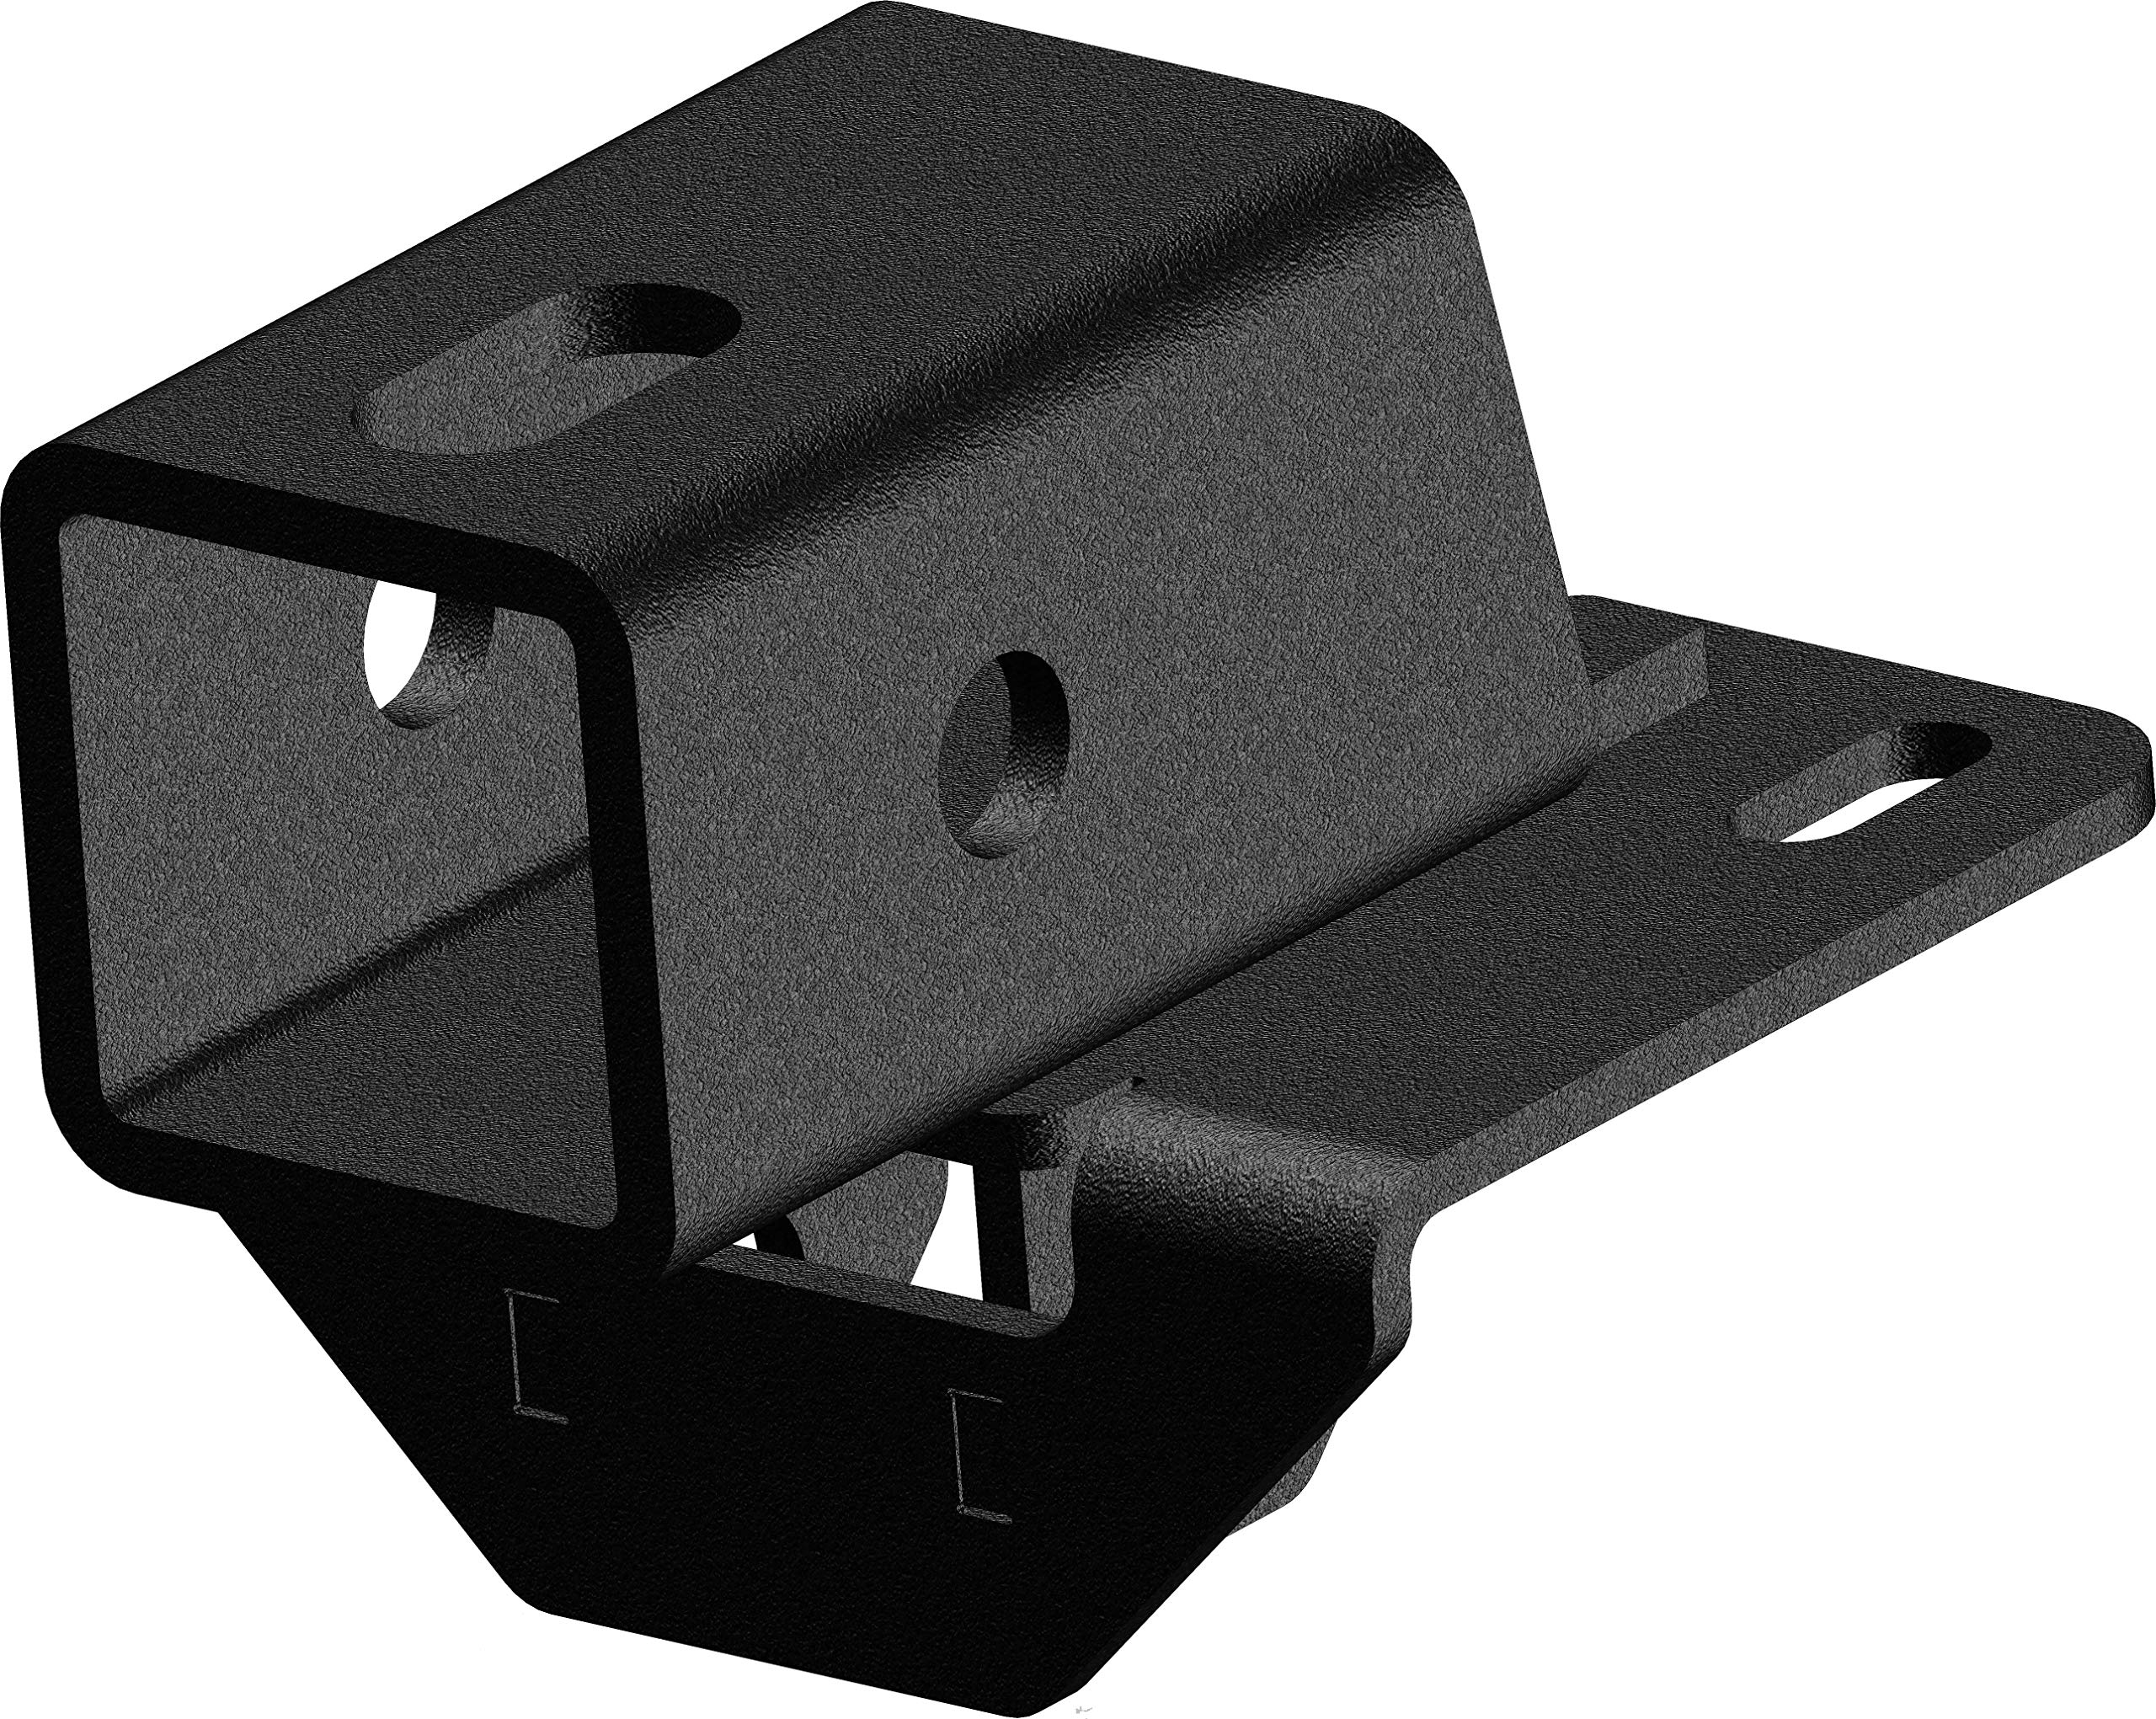 KFI Products 101385 2in. Rear Receiver